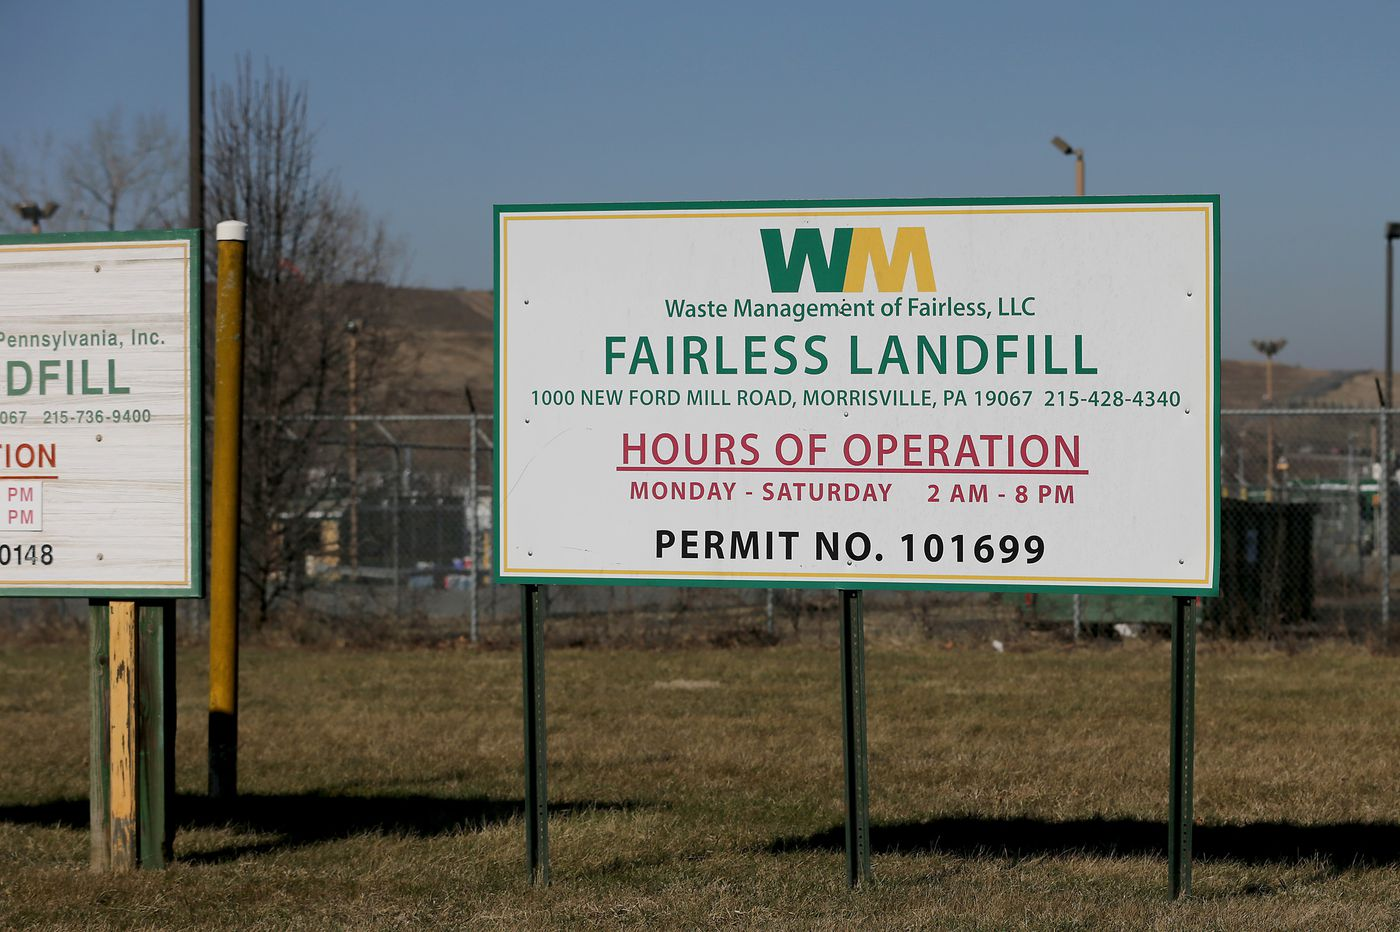 Pa. landfills are making N.J. smell 'like a rotten egg,' residents say